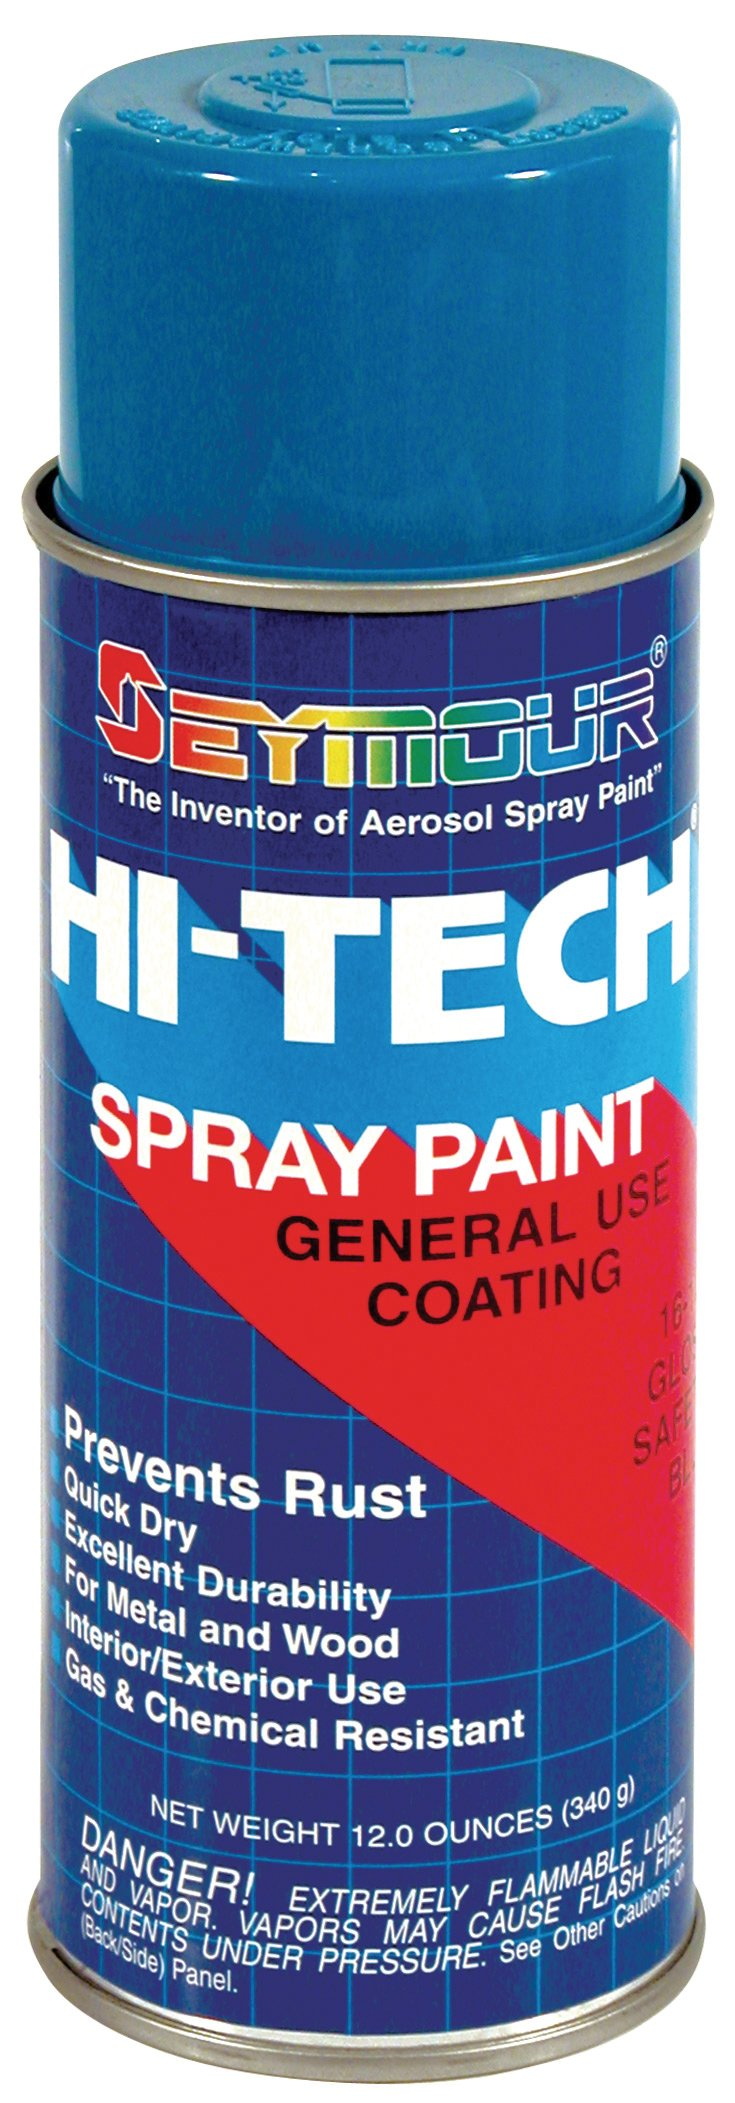 Seymour 16-129 Hi-Tech Enamels Spray Paint, Gloss Safety Blue by Seymour Paint (Image #1)